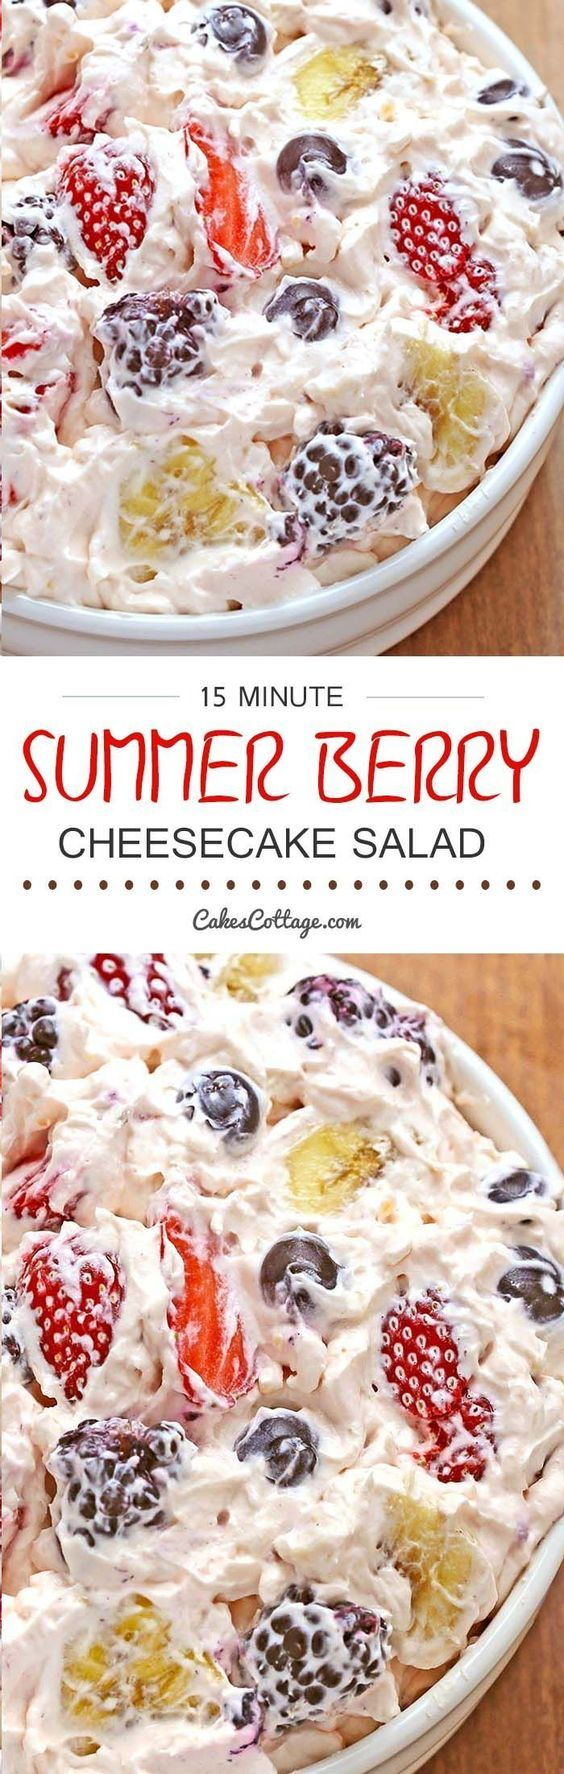 Summer Berry Cheesecake Salad - delicious, absolutely loaded with berries tossed in a thick, rich and creamy cheesecake mixture, a must have for all picnics, BBQ's, potlucks, and family get-togethers...